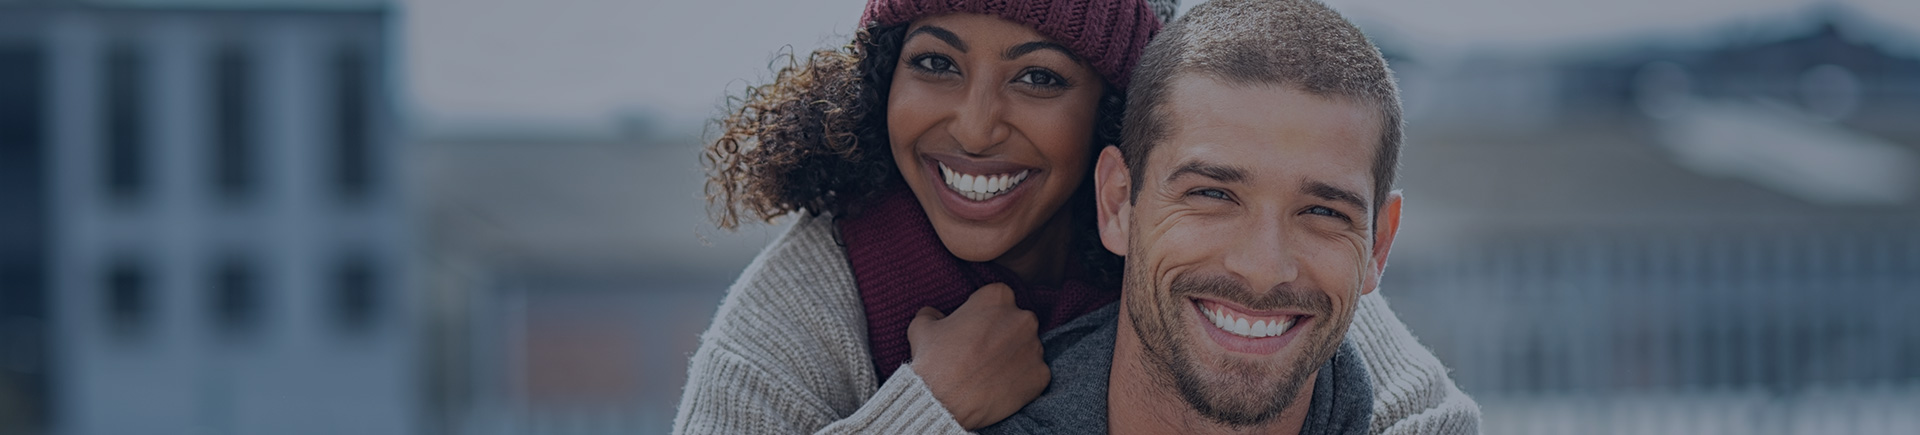 Your 2019 Dental Insurance: Use It or Lose It! Atlanta, GA